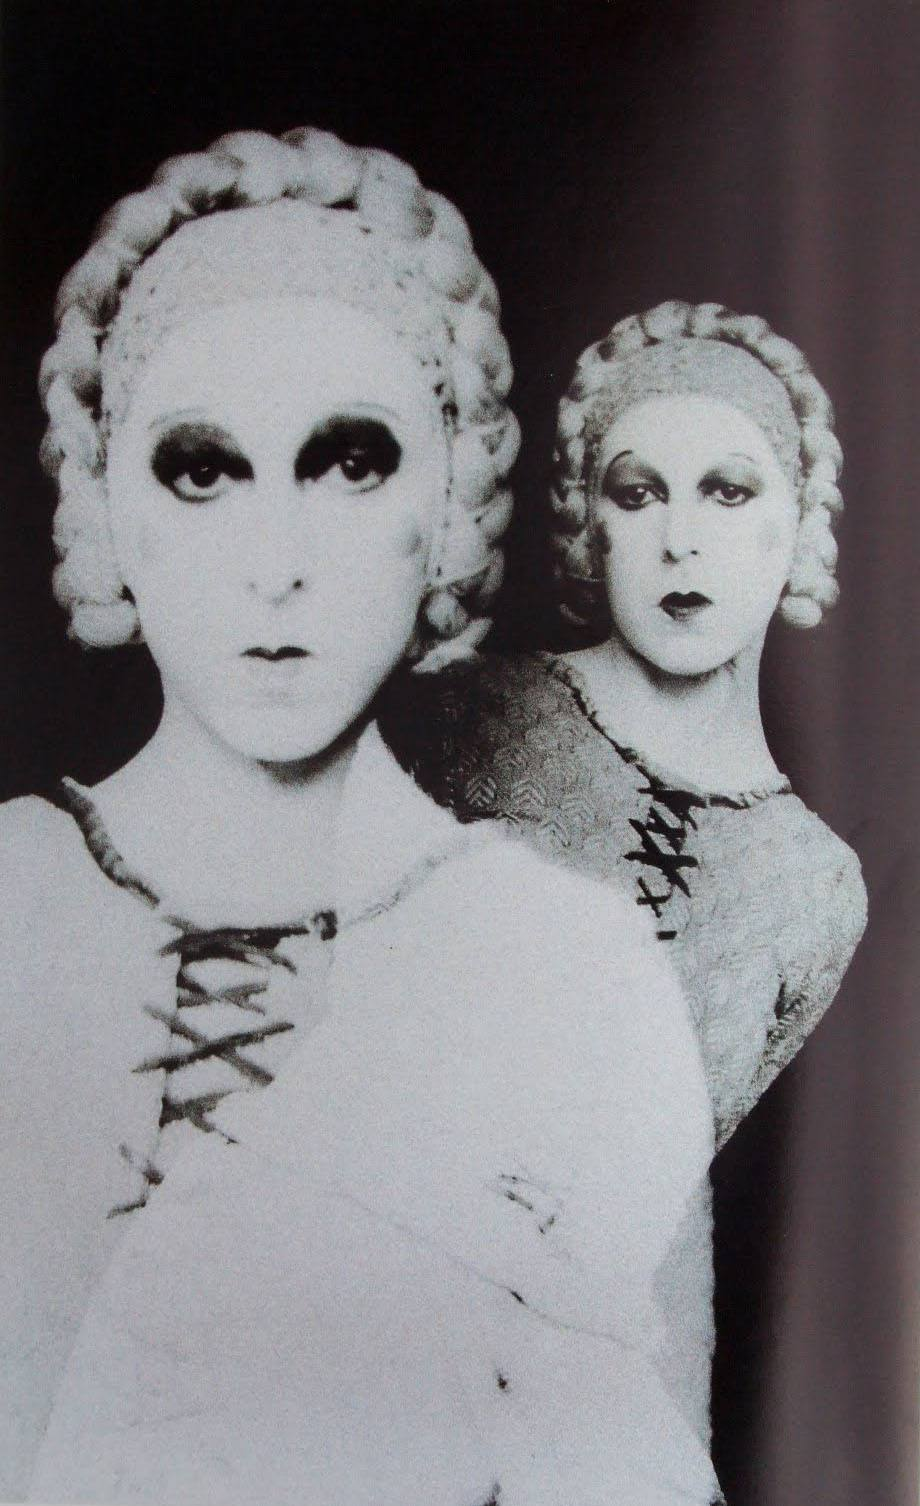 Claude Cahun, Self-portrait, 1929. Gelatin and silver print.